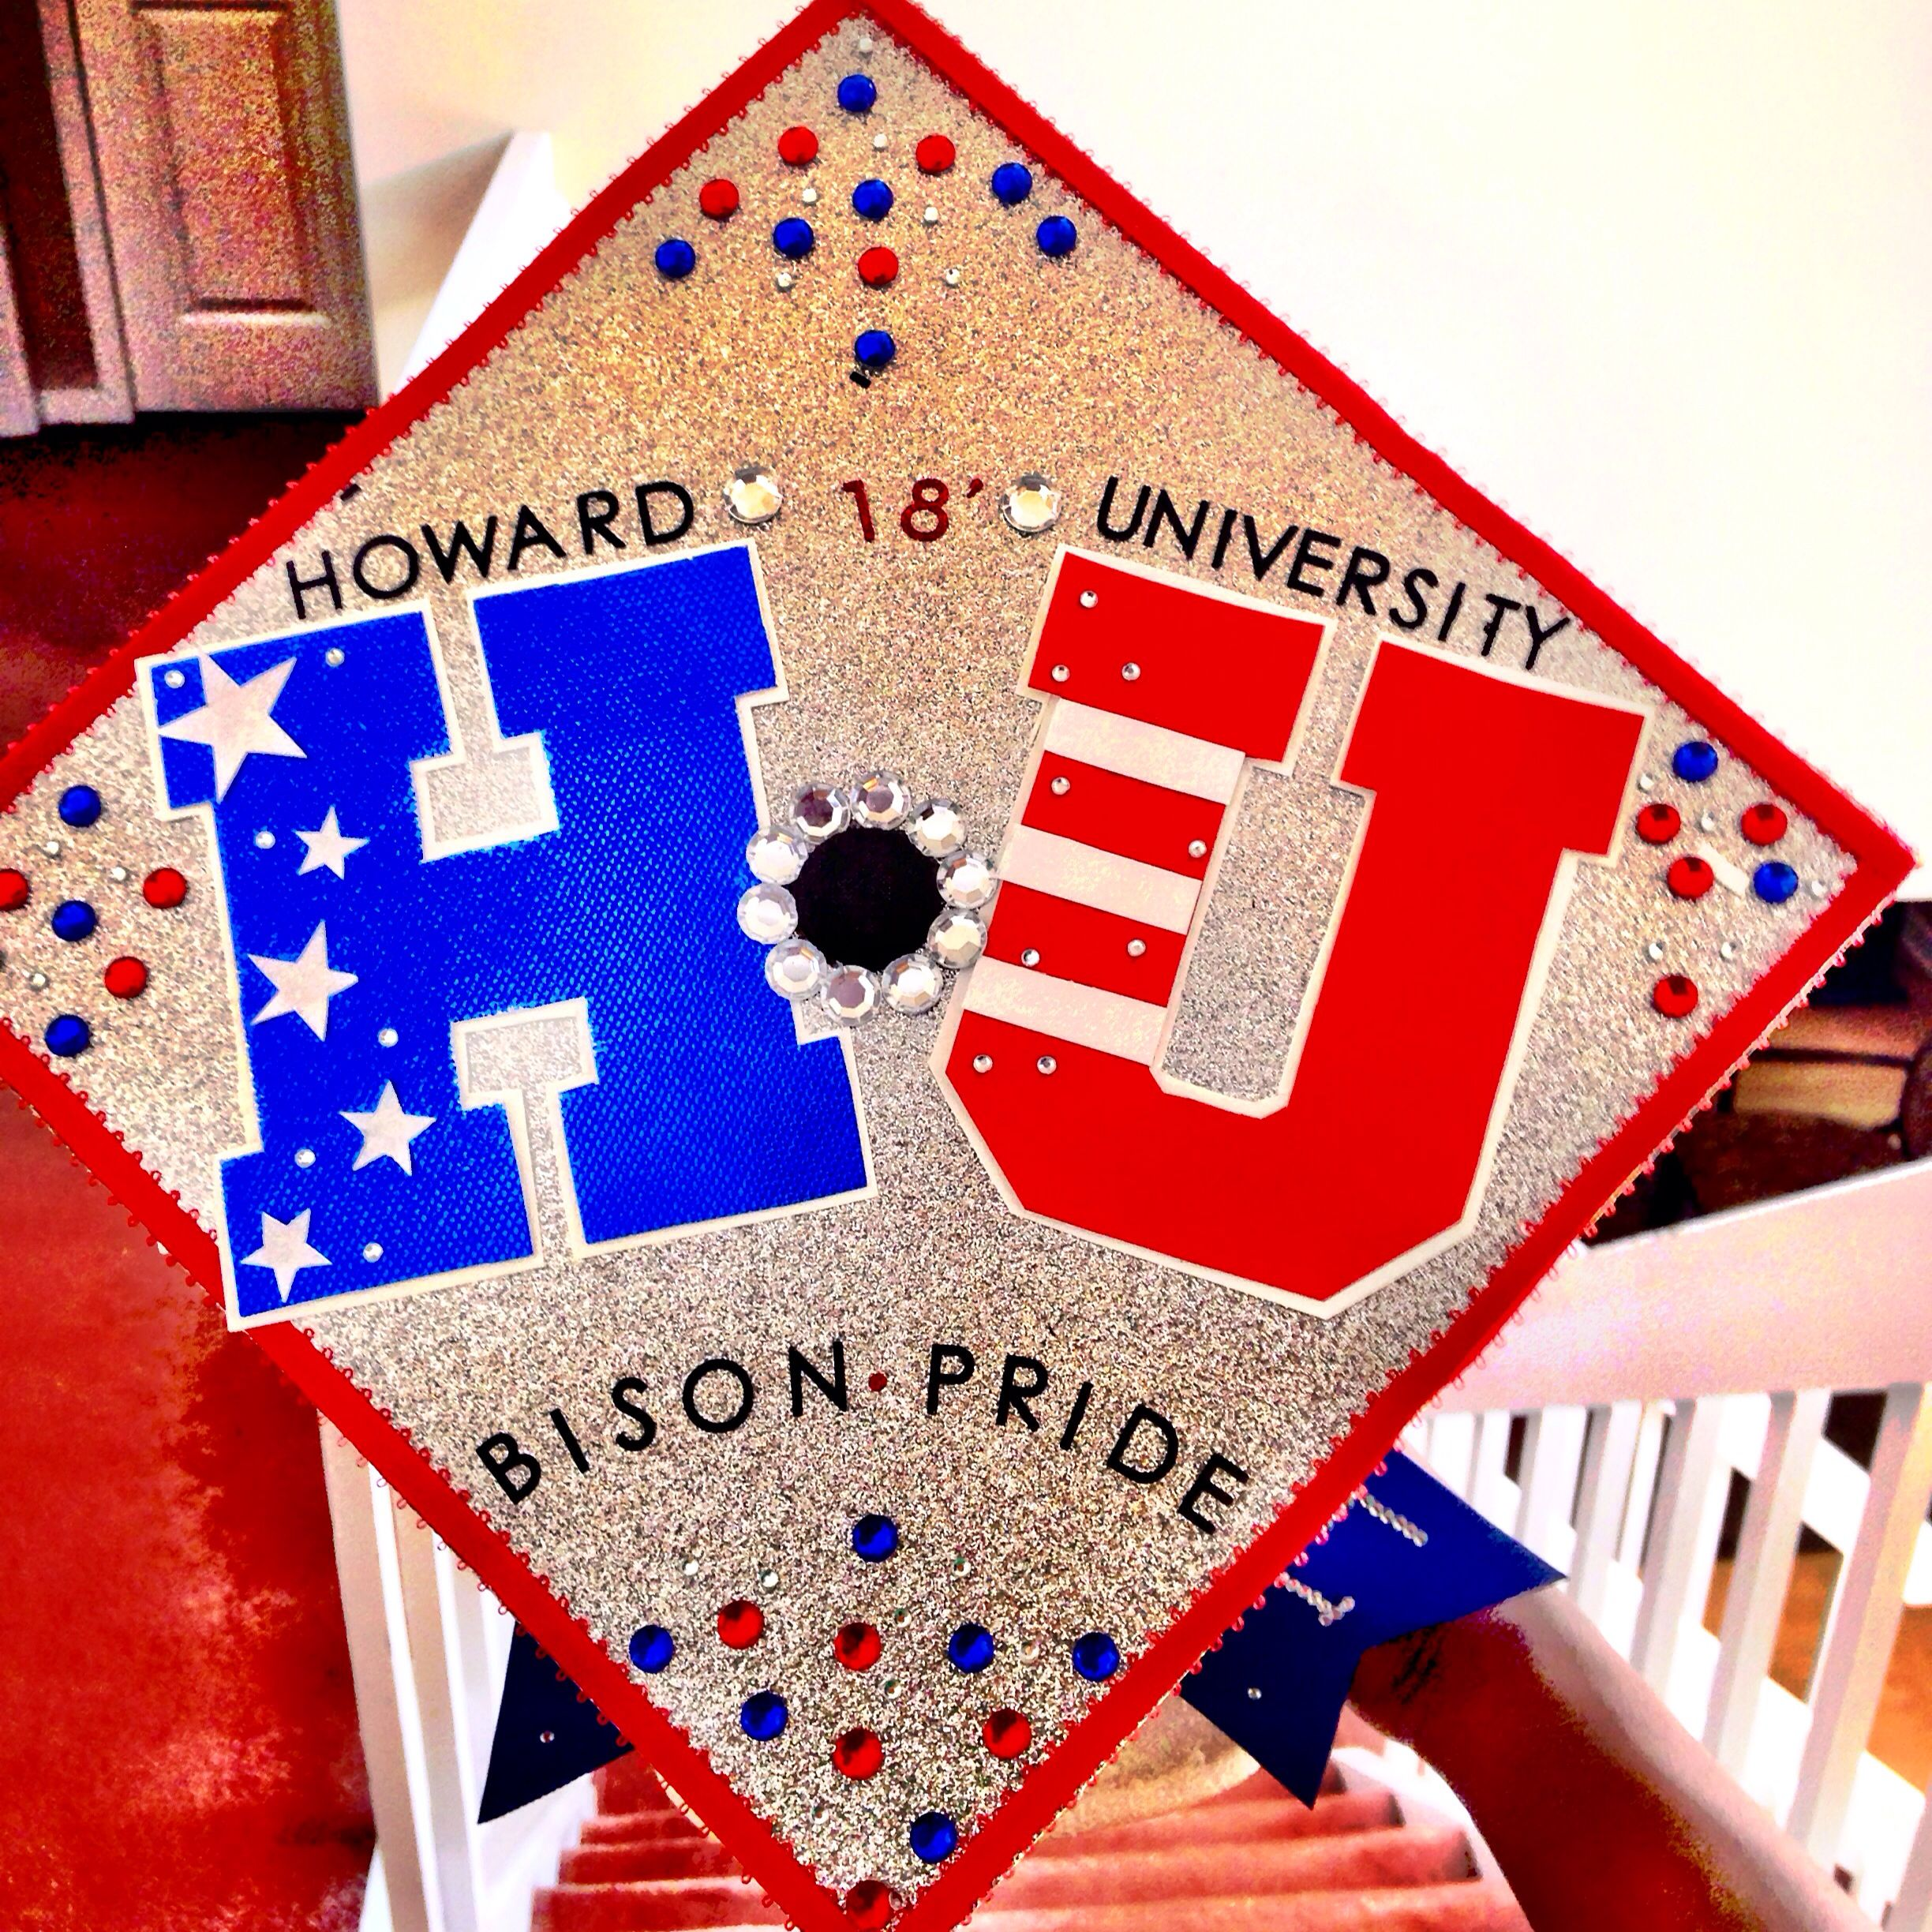 howard university graduation cap getting ready for howard howard university graduation cap